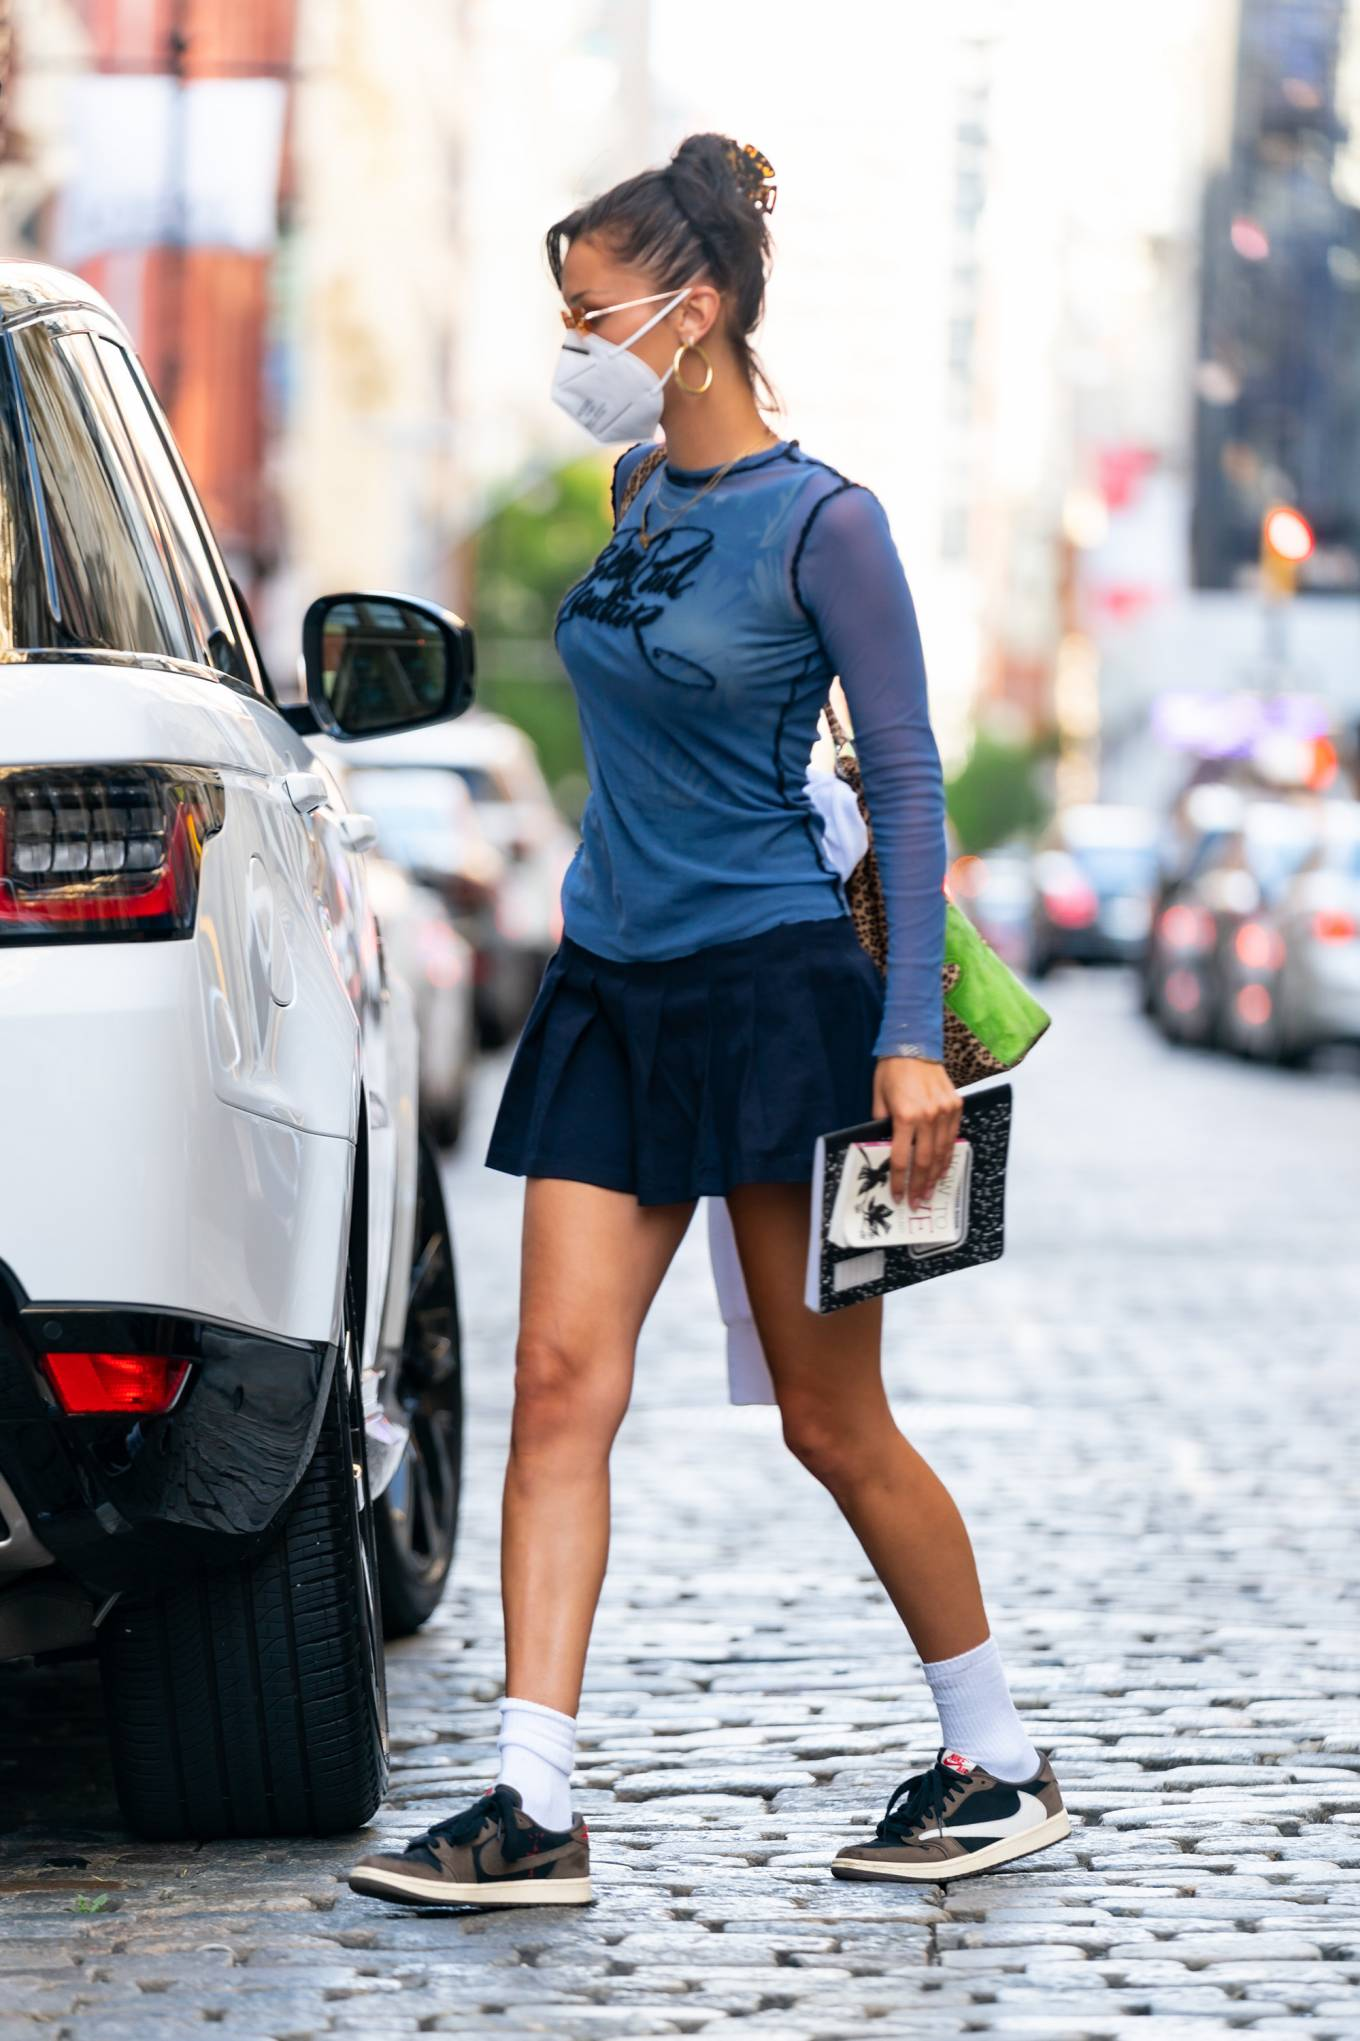 Bella Hadid - Looks chick heading out in New York